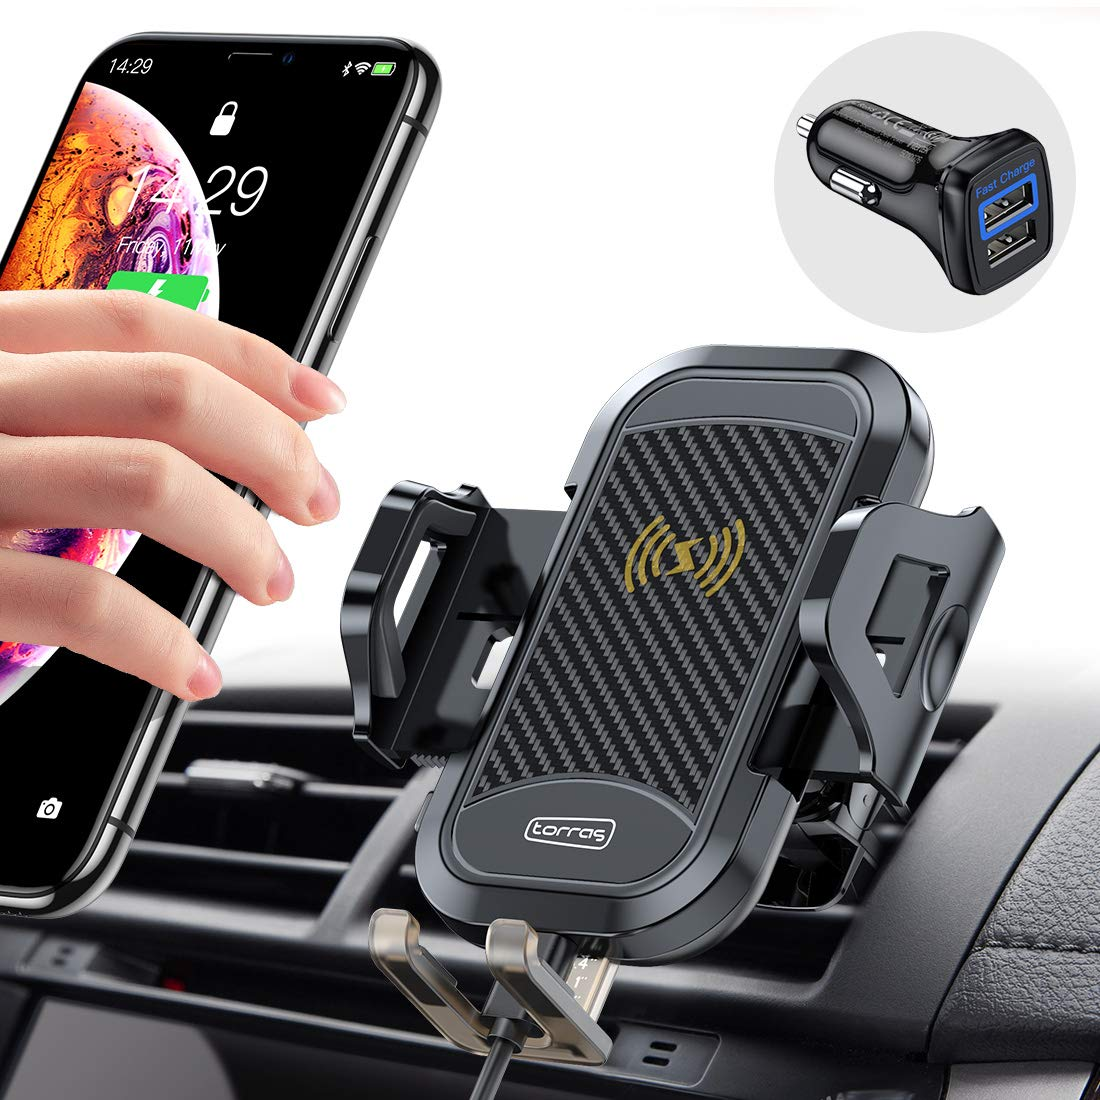 TORRAS [Upgraded] Wireless Car Charger Mount with QC 3.0 Adapter, Stronger Qi Safe Fast Charging Holder for Car Air Vent Compatible with iPhone 11 Pro Max XS XR X 8 Plus Samsung S10 S9 Note10 9 More by TORRAS